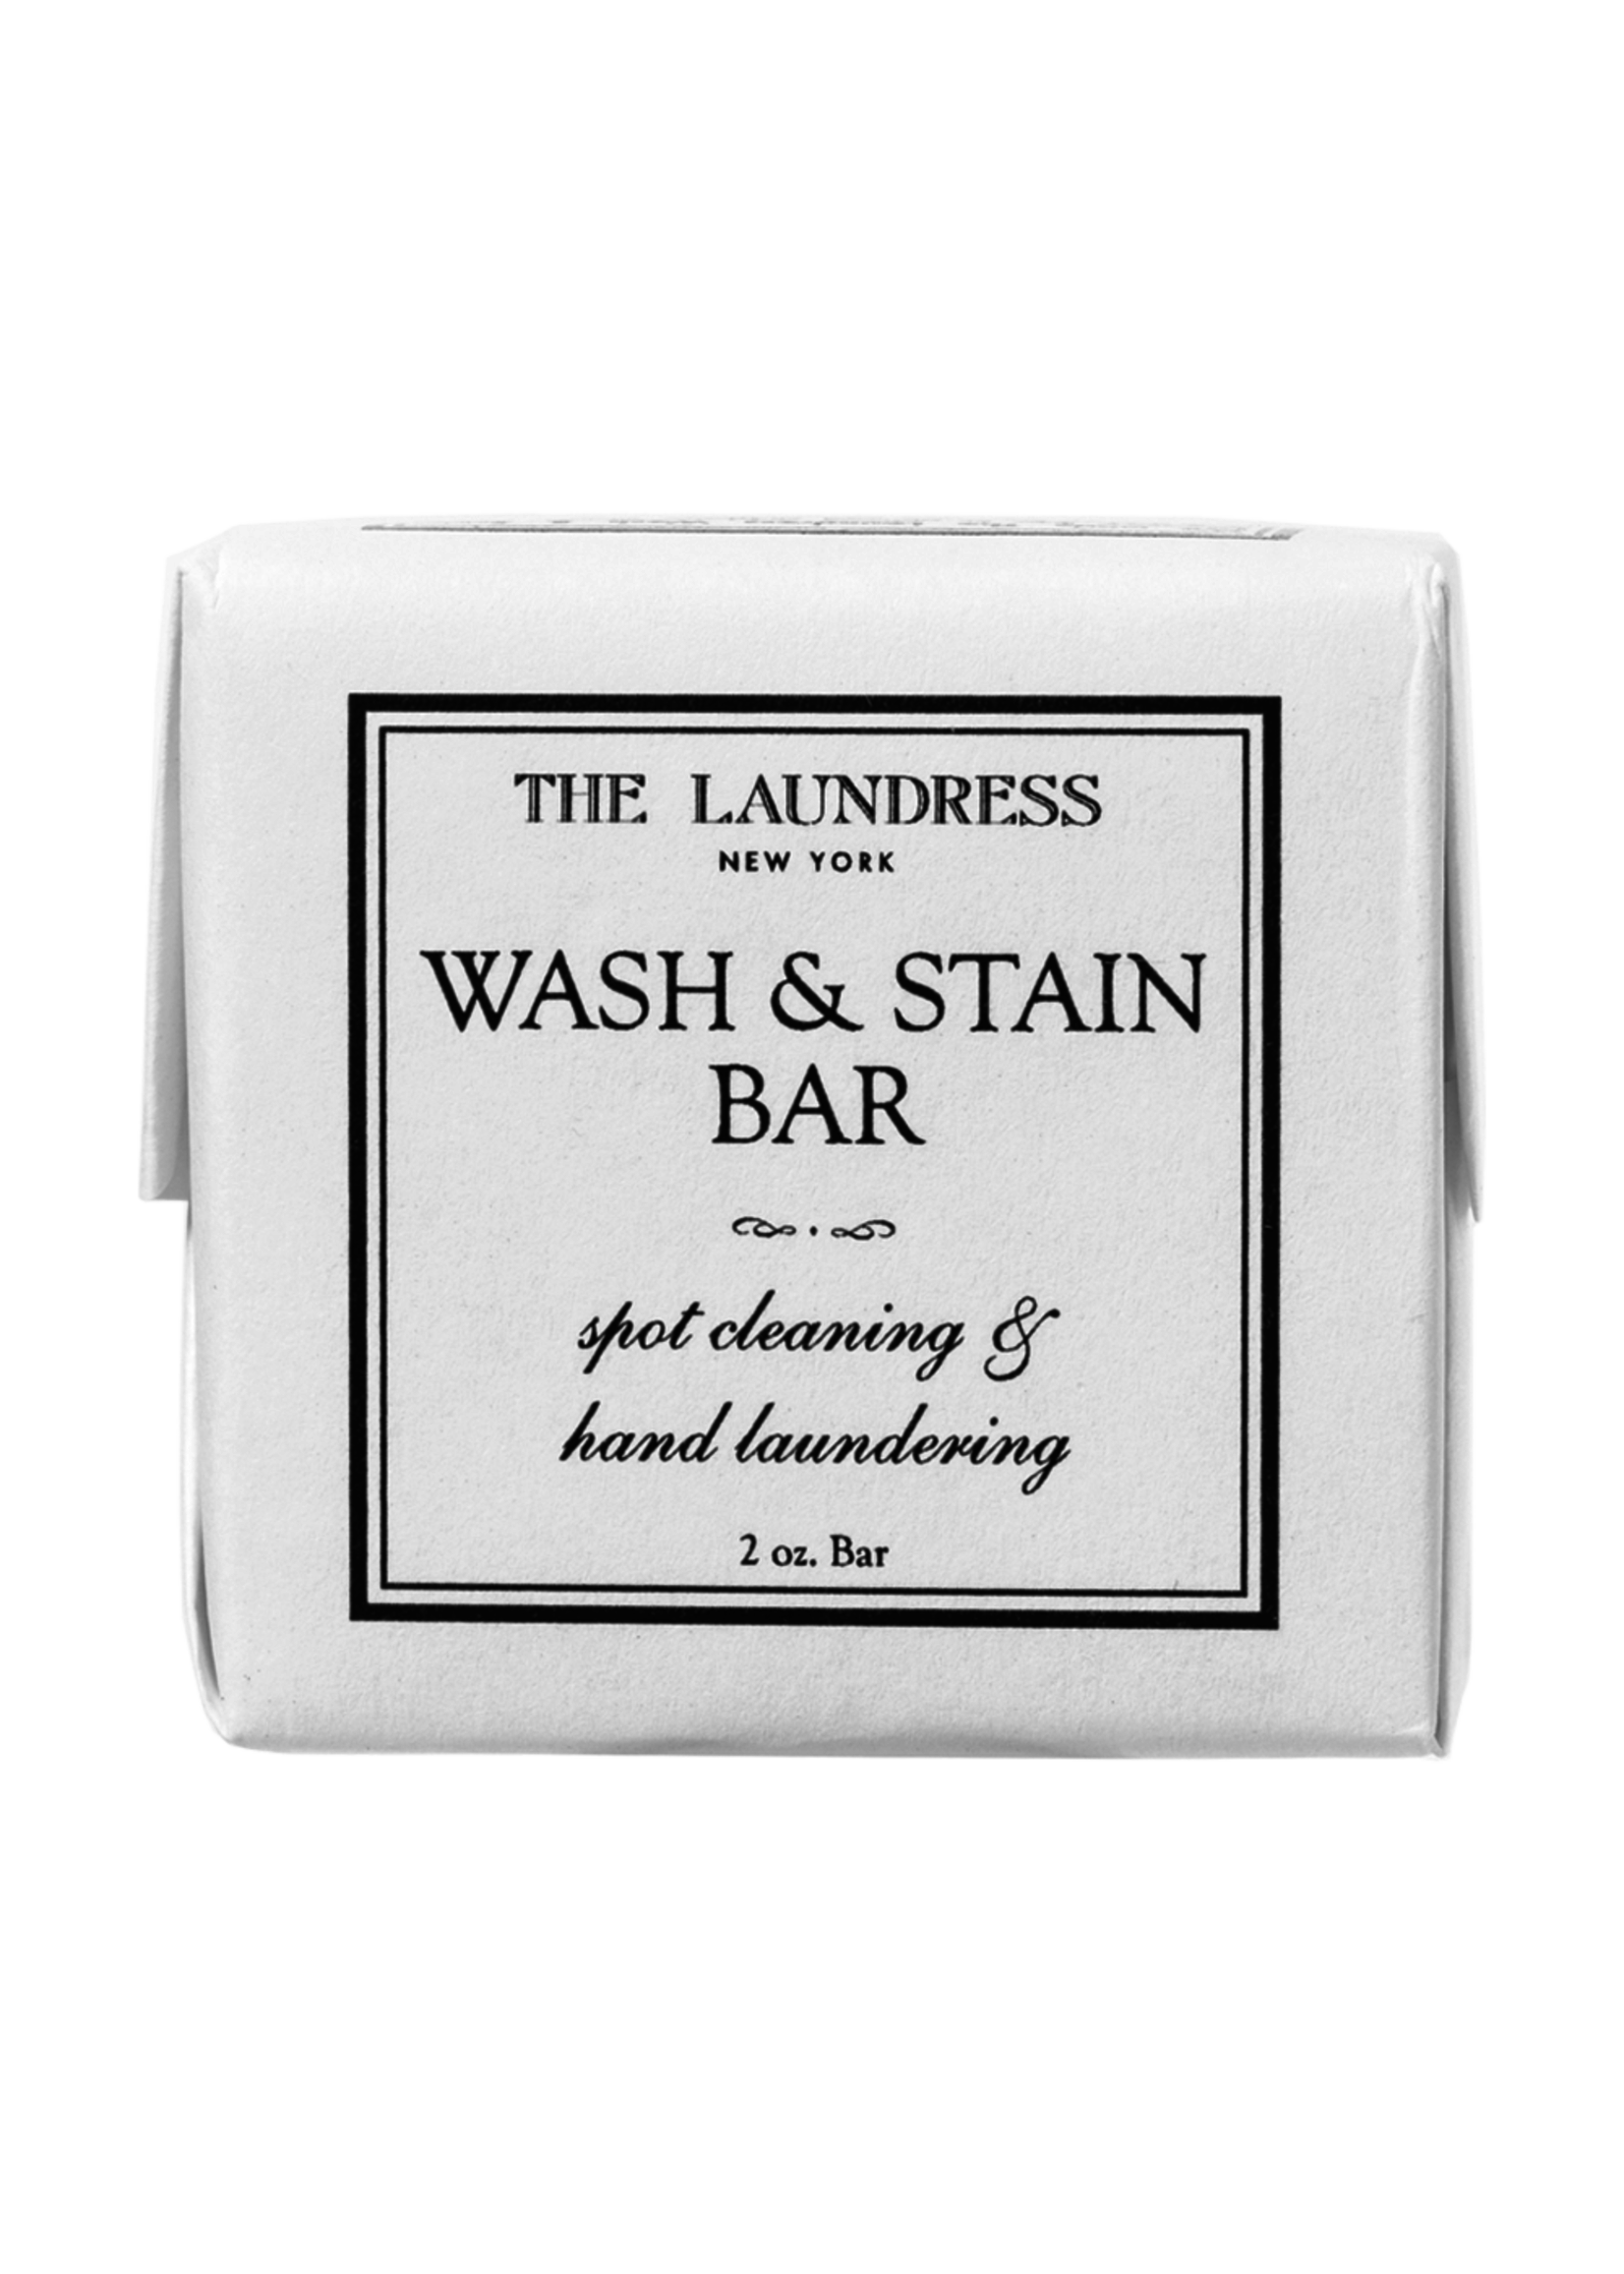 The Laundress New York Wash & Stain Bar